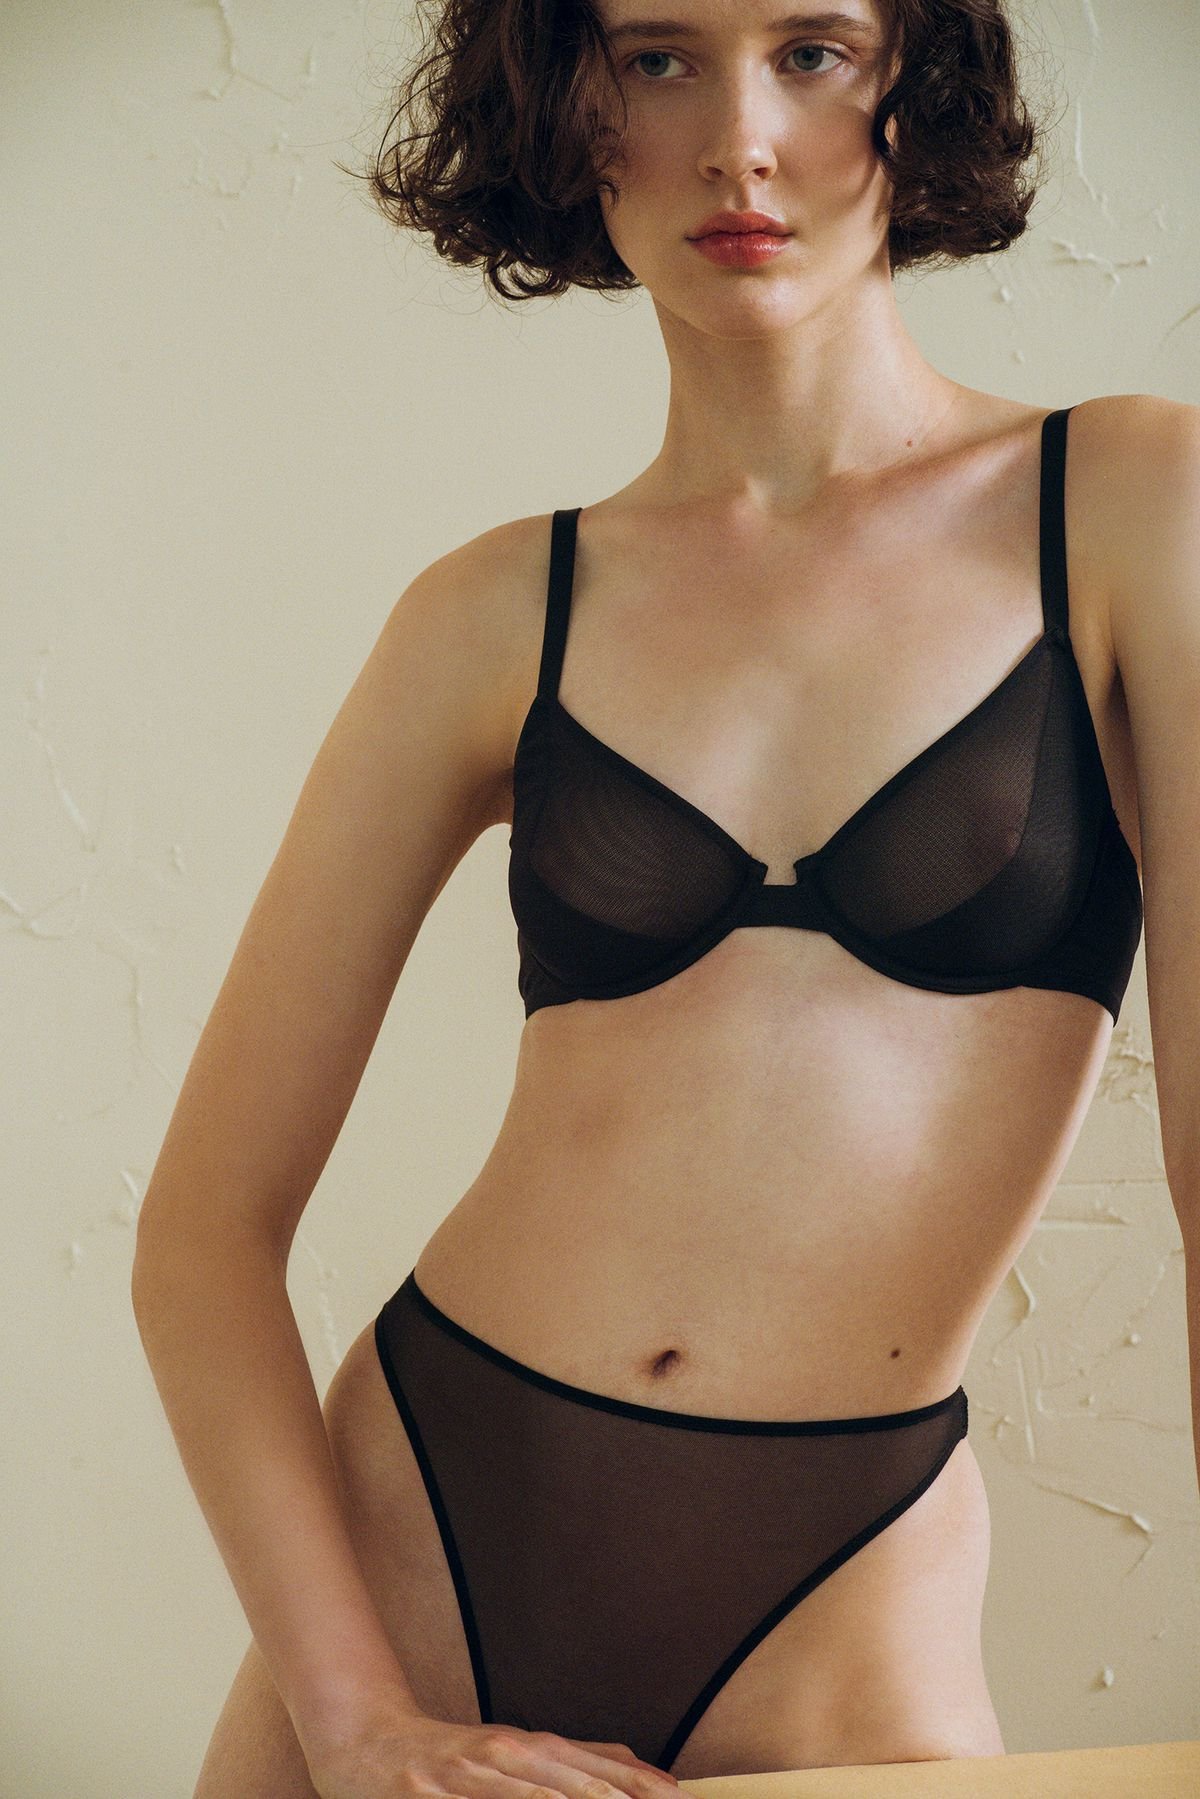 9f518dabc9b30 A model in a sheer black lingerie set from The Great Eros